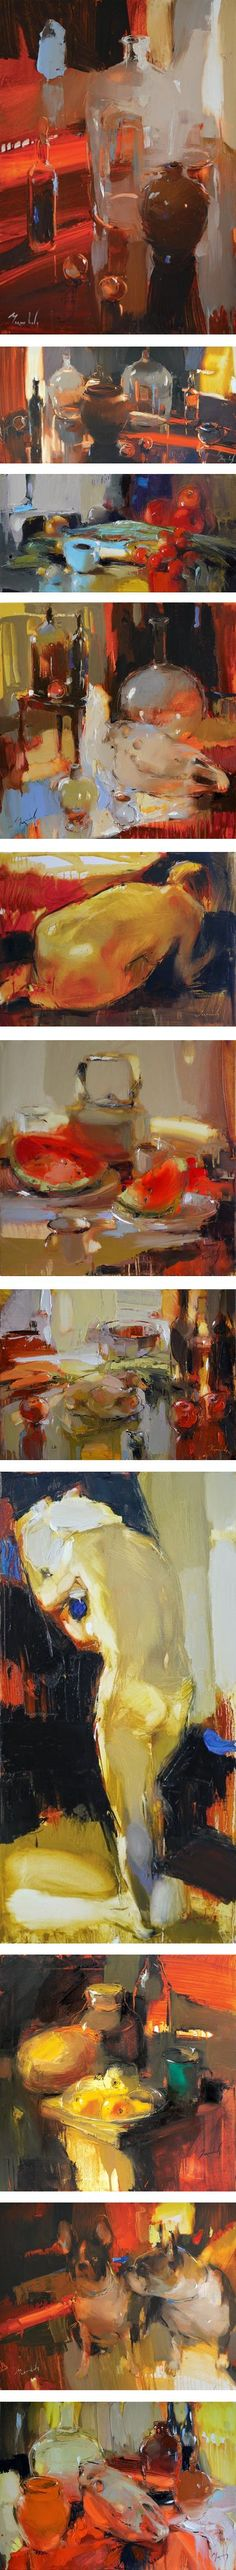 Iryna Yermolova | Lines and Colors :: a blog about drawing, painting, illustration, comics, concept art and other visual arts